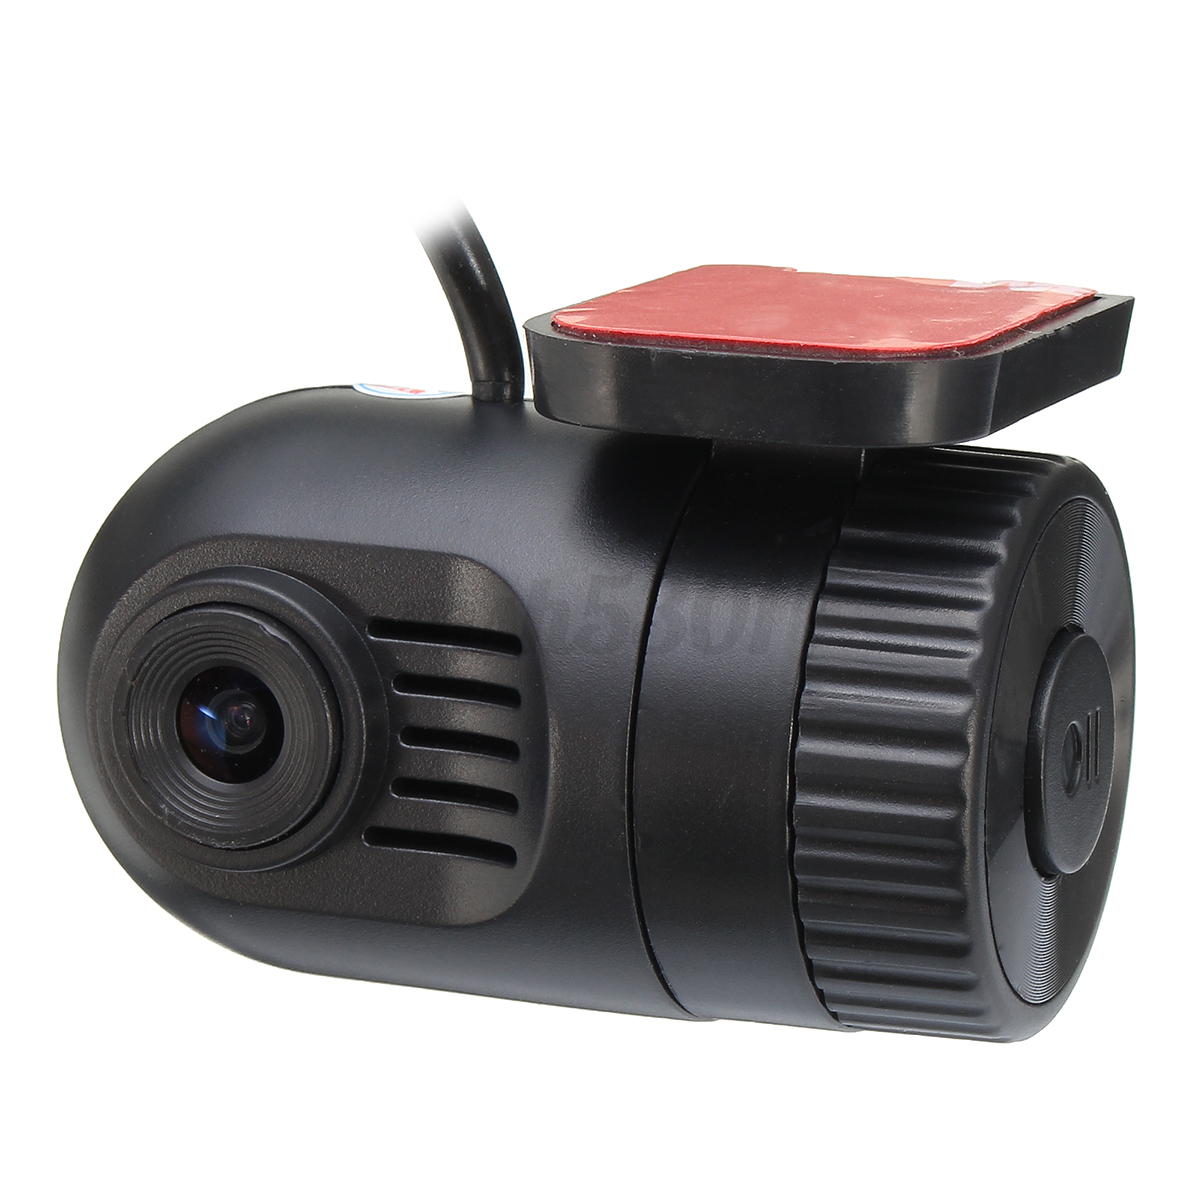 Hidden Dash Cam For Car >> Mini Full HD 1080P Car DVR G-Sensor Video Recorder Vehicle Dash Camera Camcorder